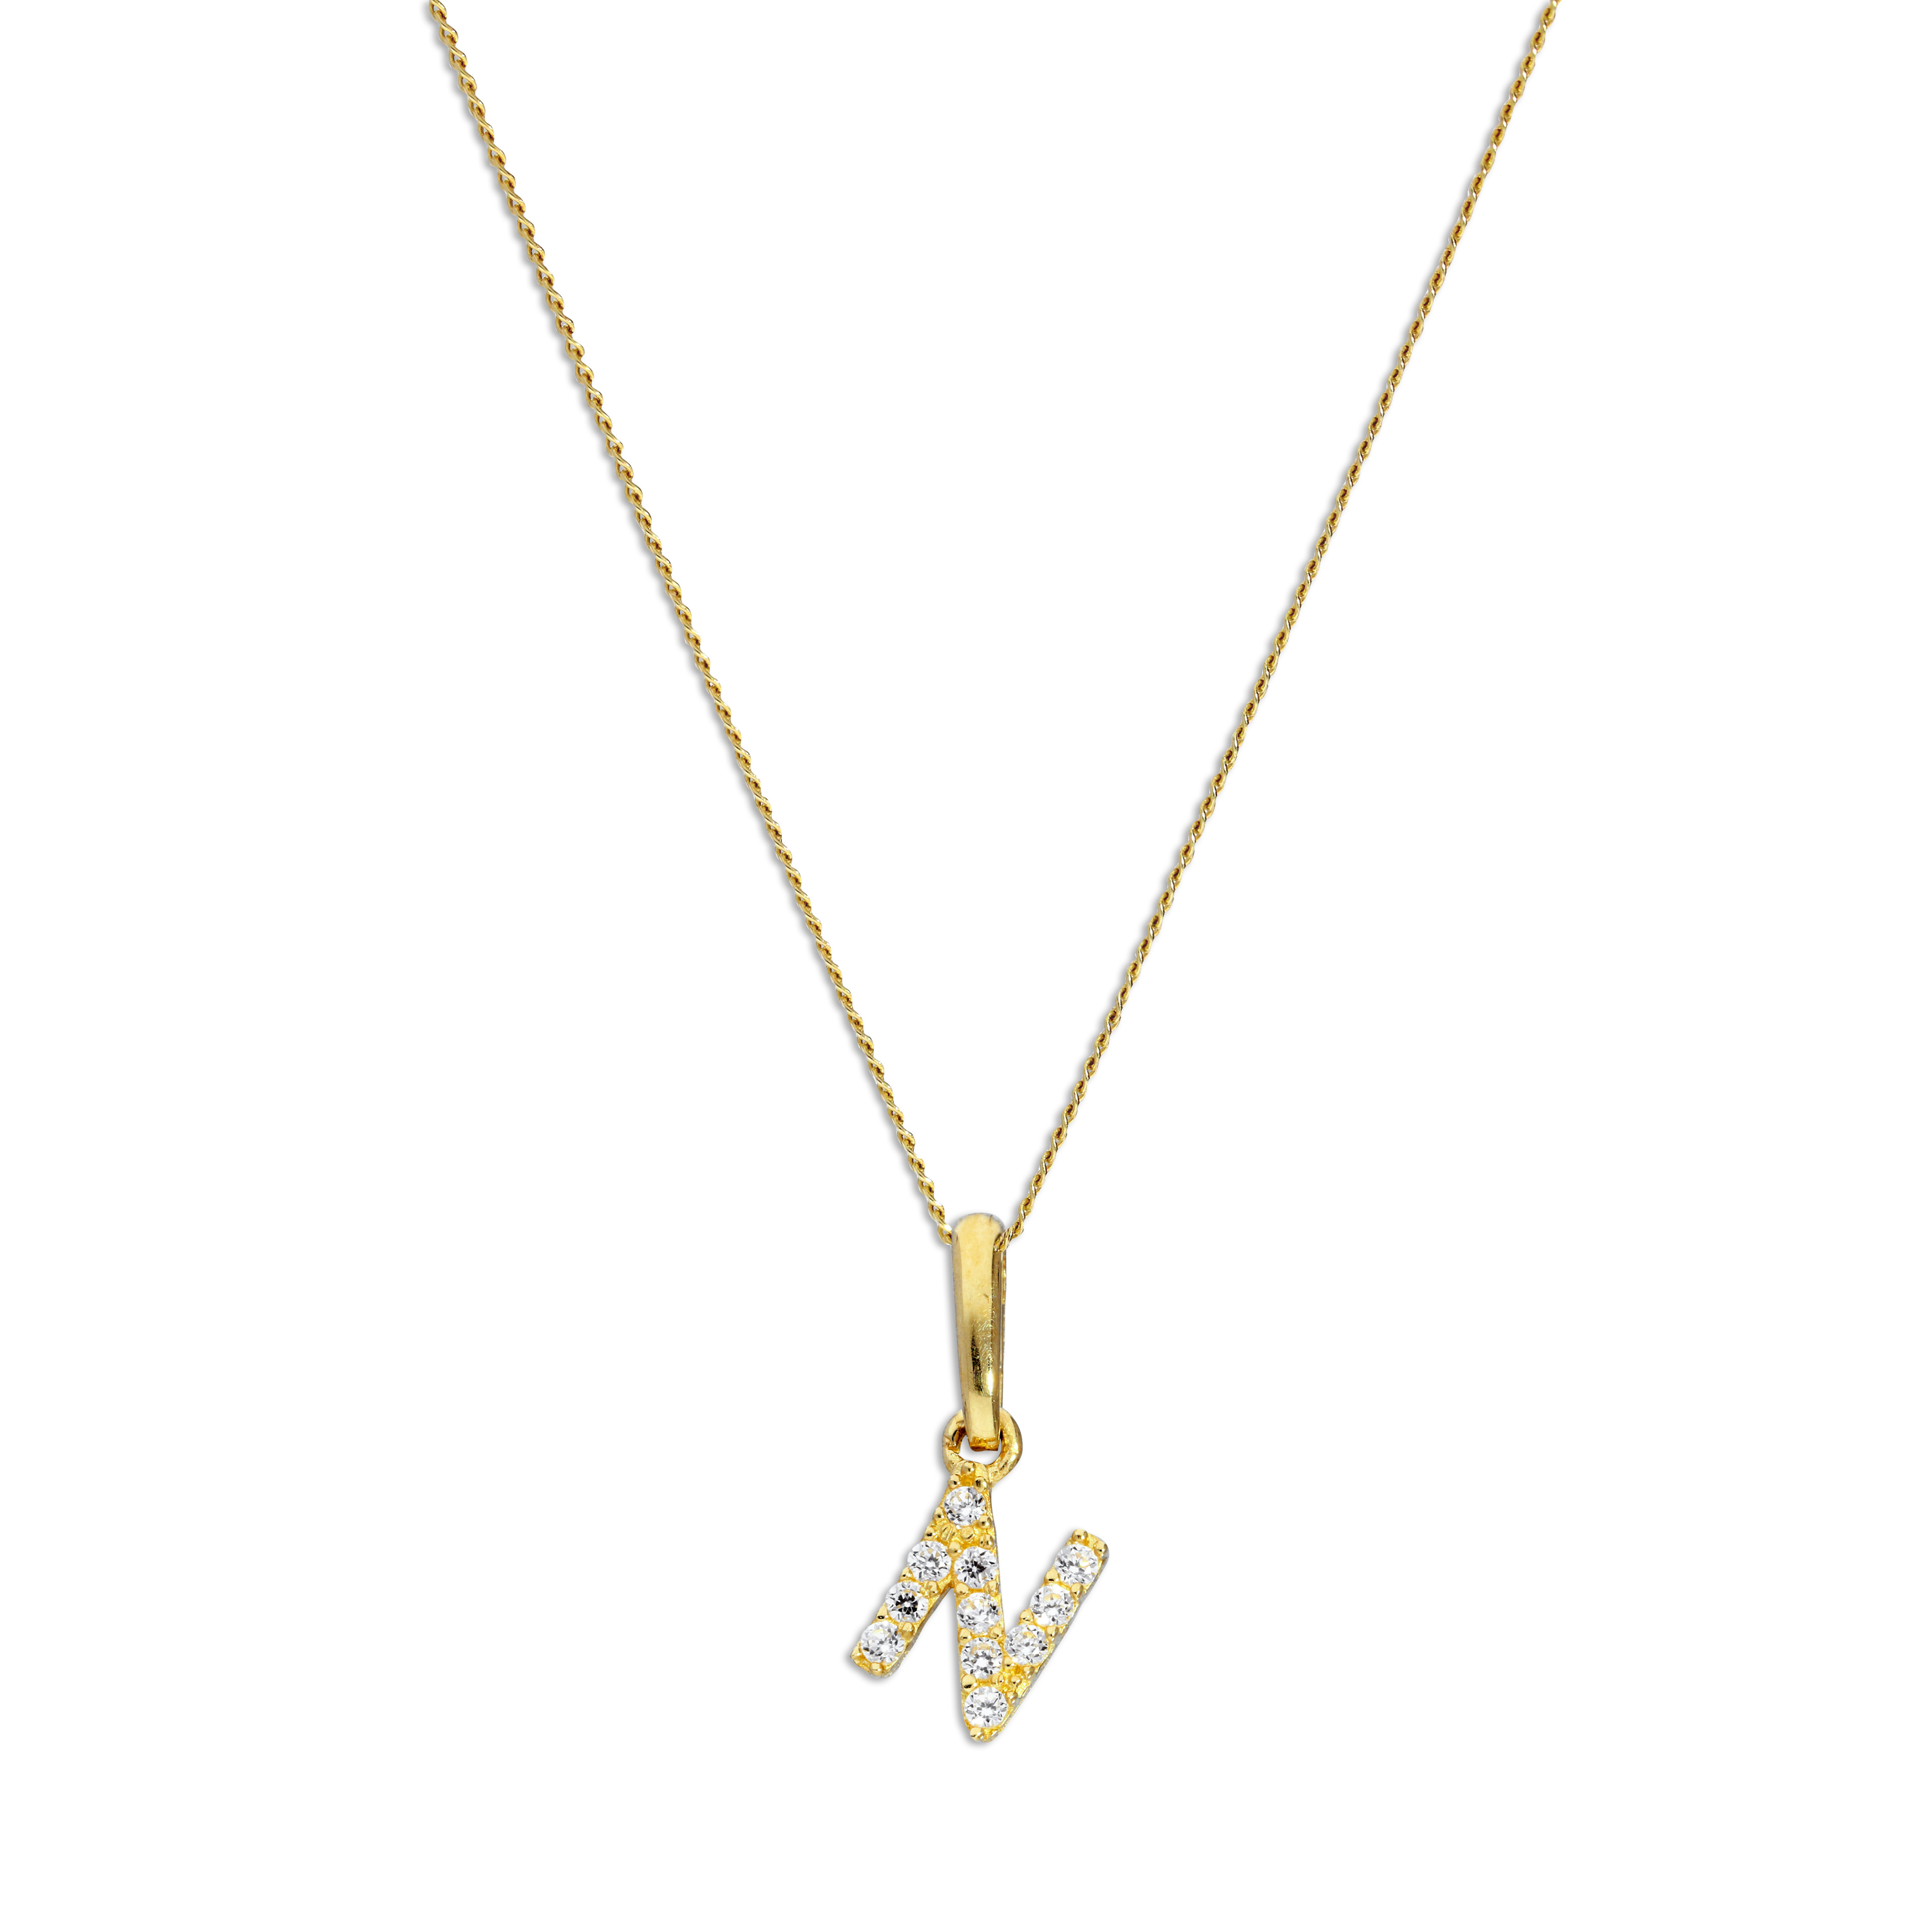 An image of 9ct Gold Clear CZ Crystal Script Alphabet Letter N Necklace 18 Inches Chain